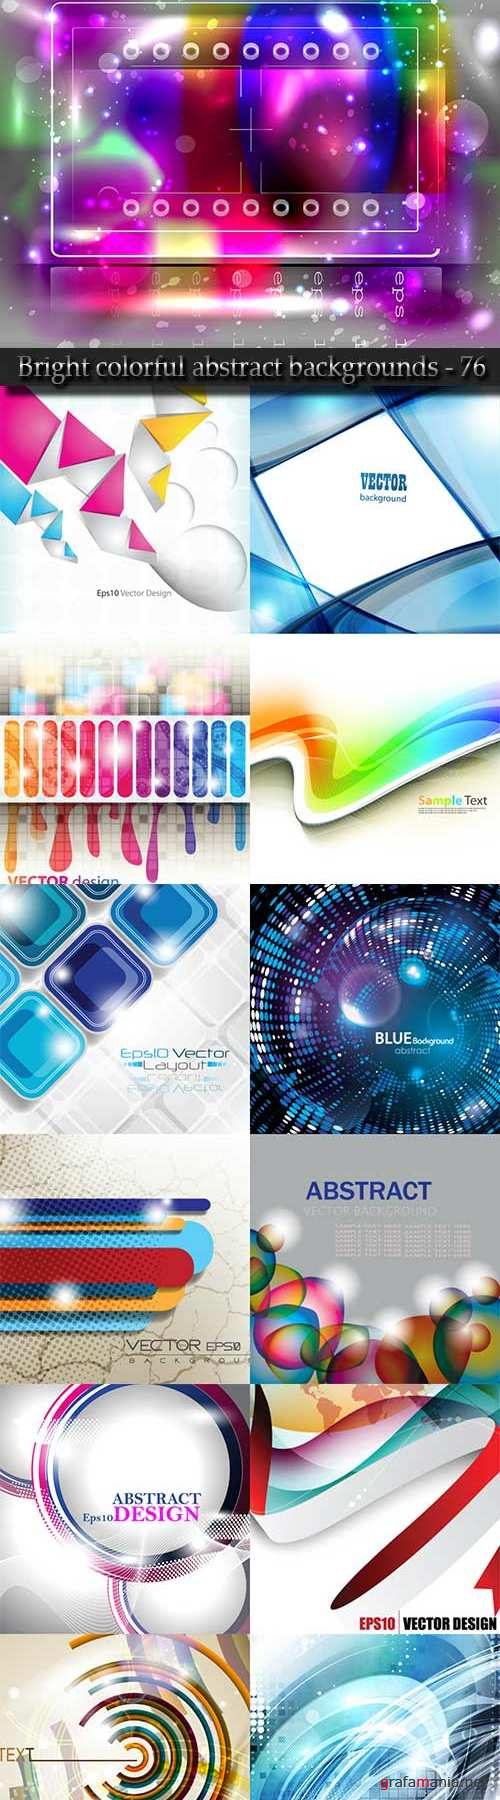 Bright colorful abstract backgrounds vector - 76